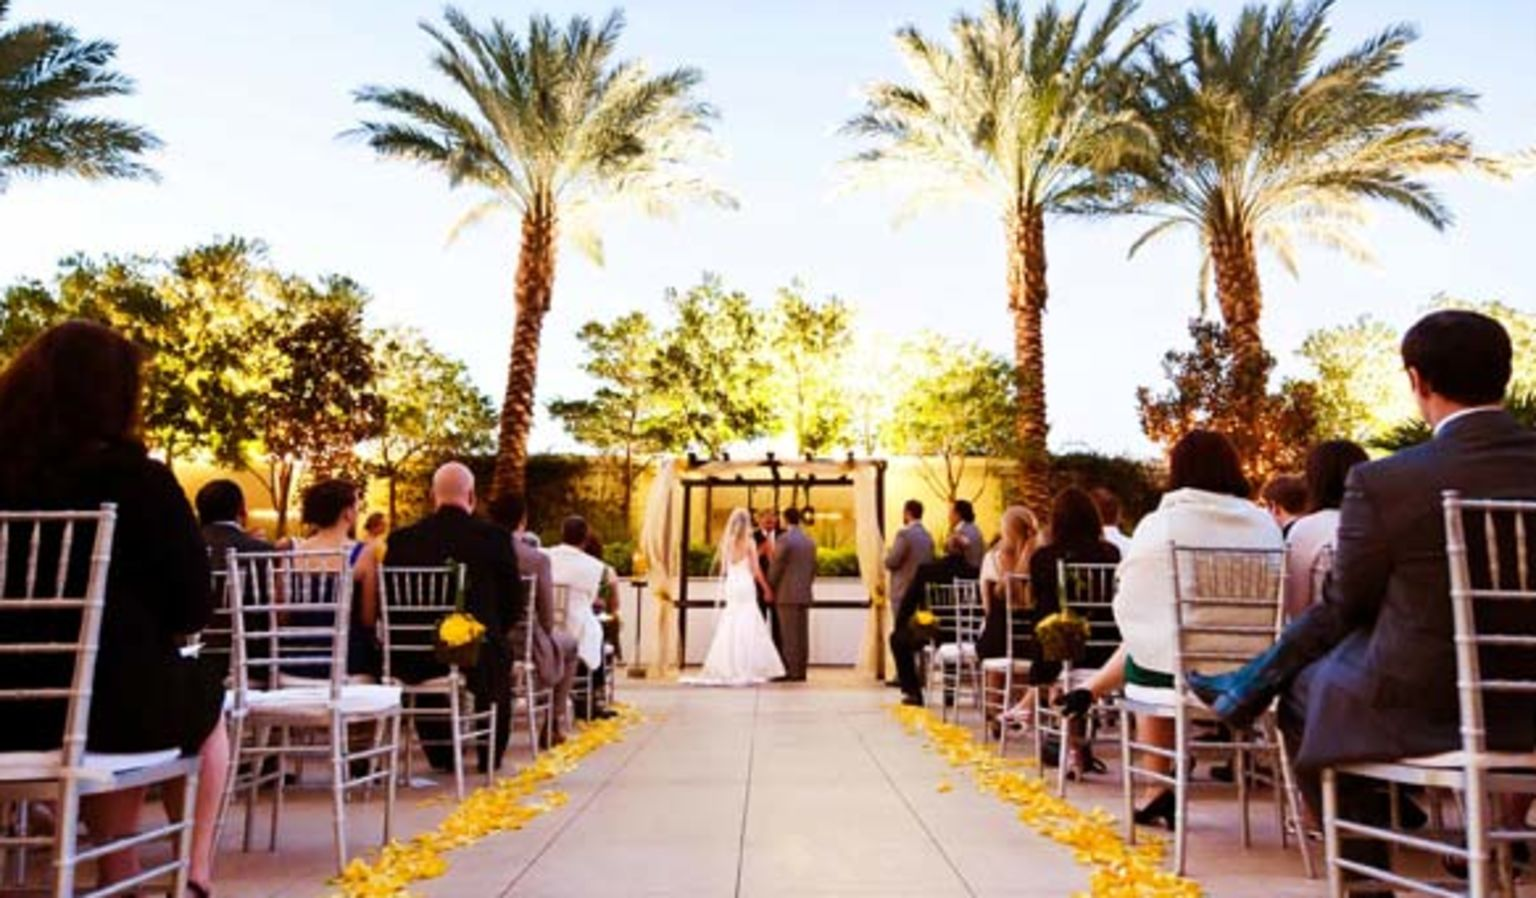 Outdoor Wedding Ceremony near Palm Trees